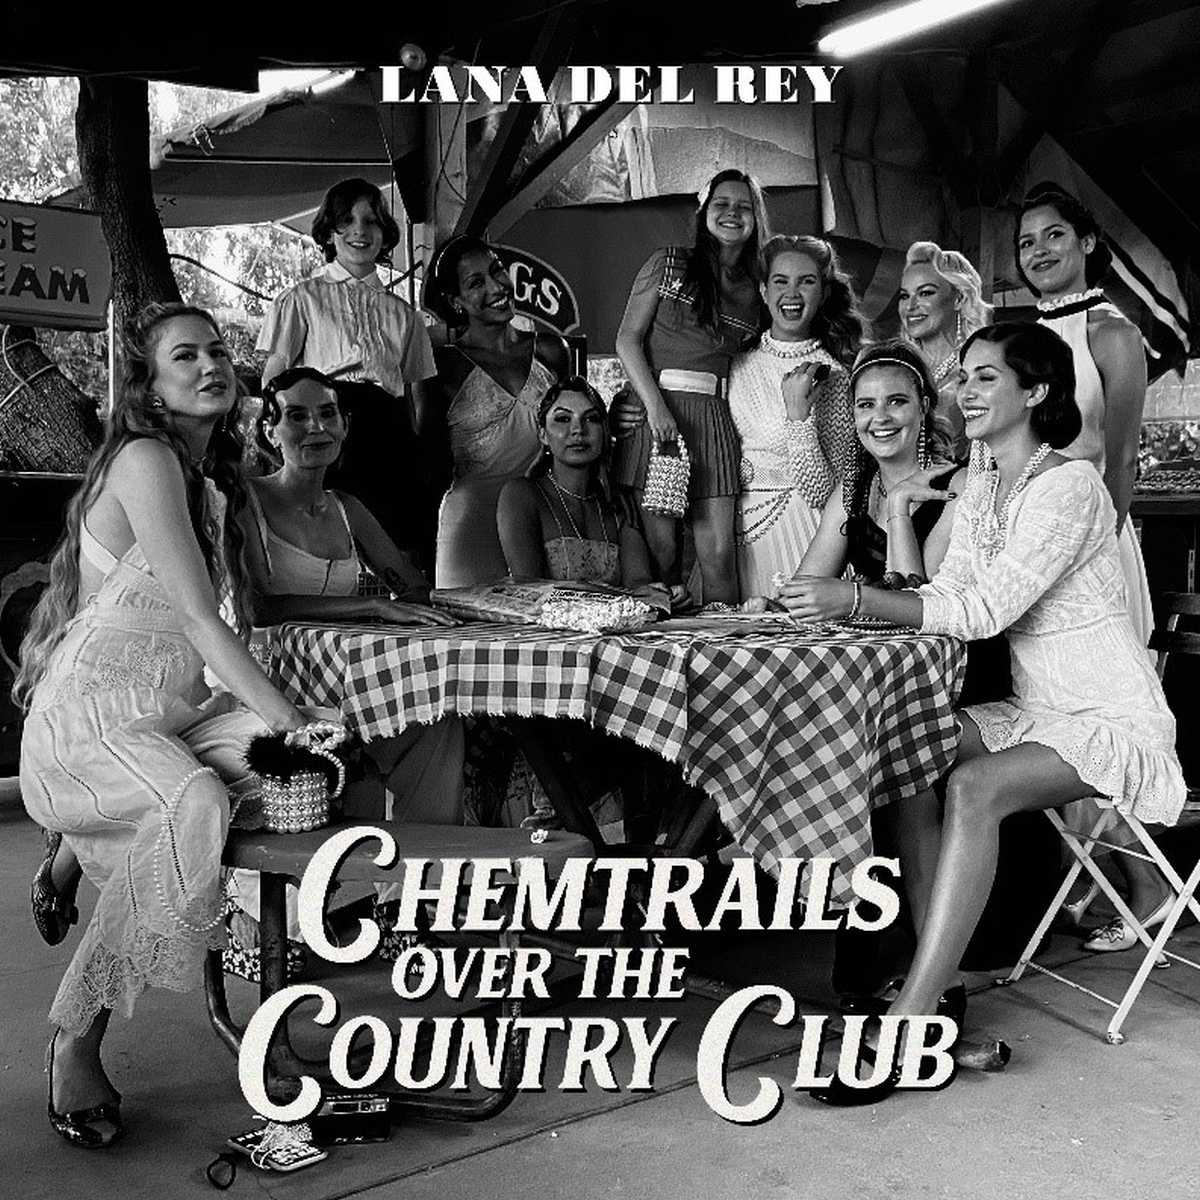 testo chemtrails over the country club lana del rey